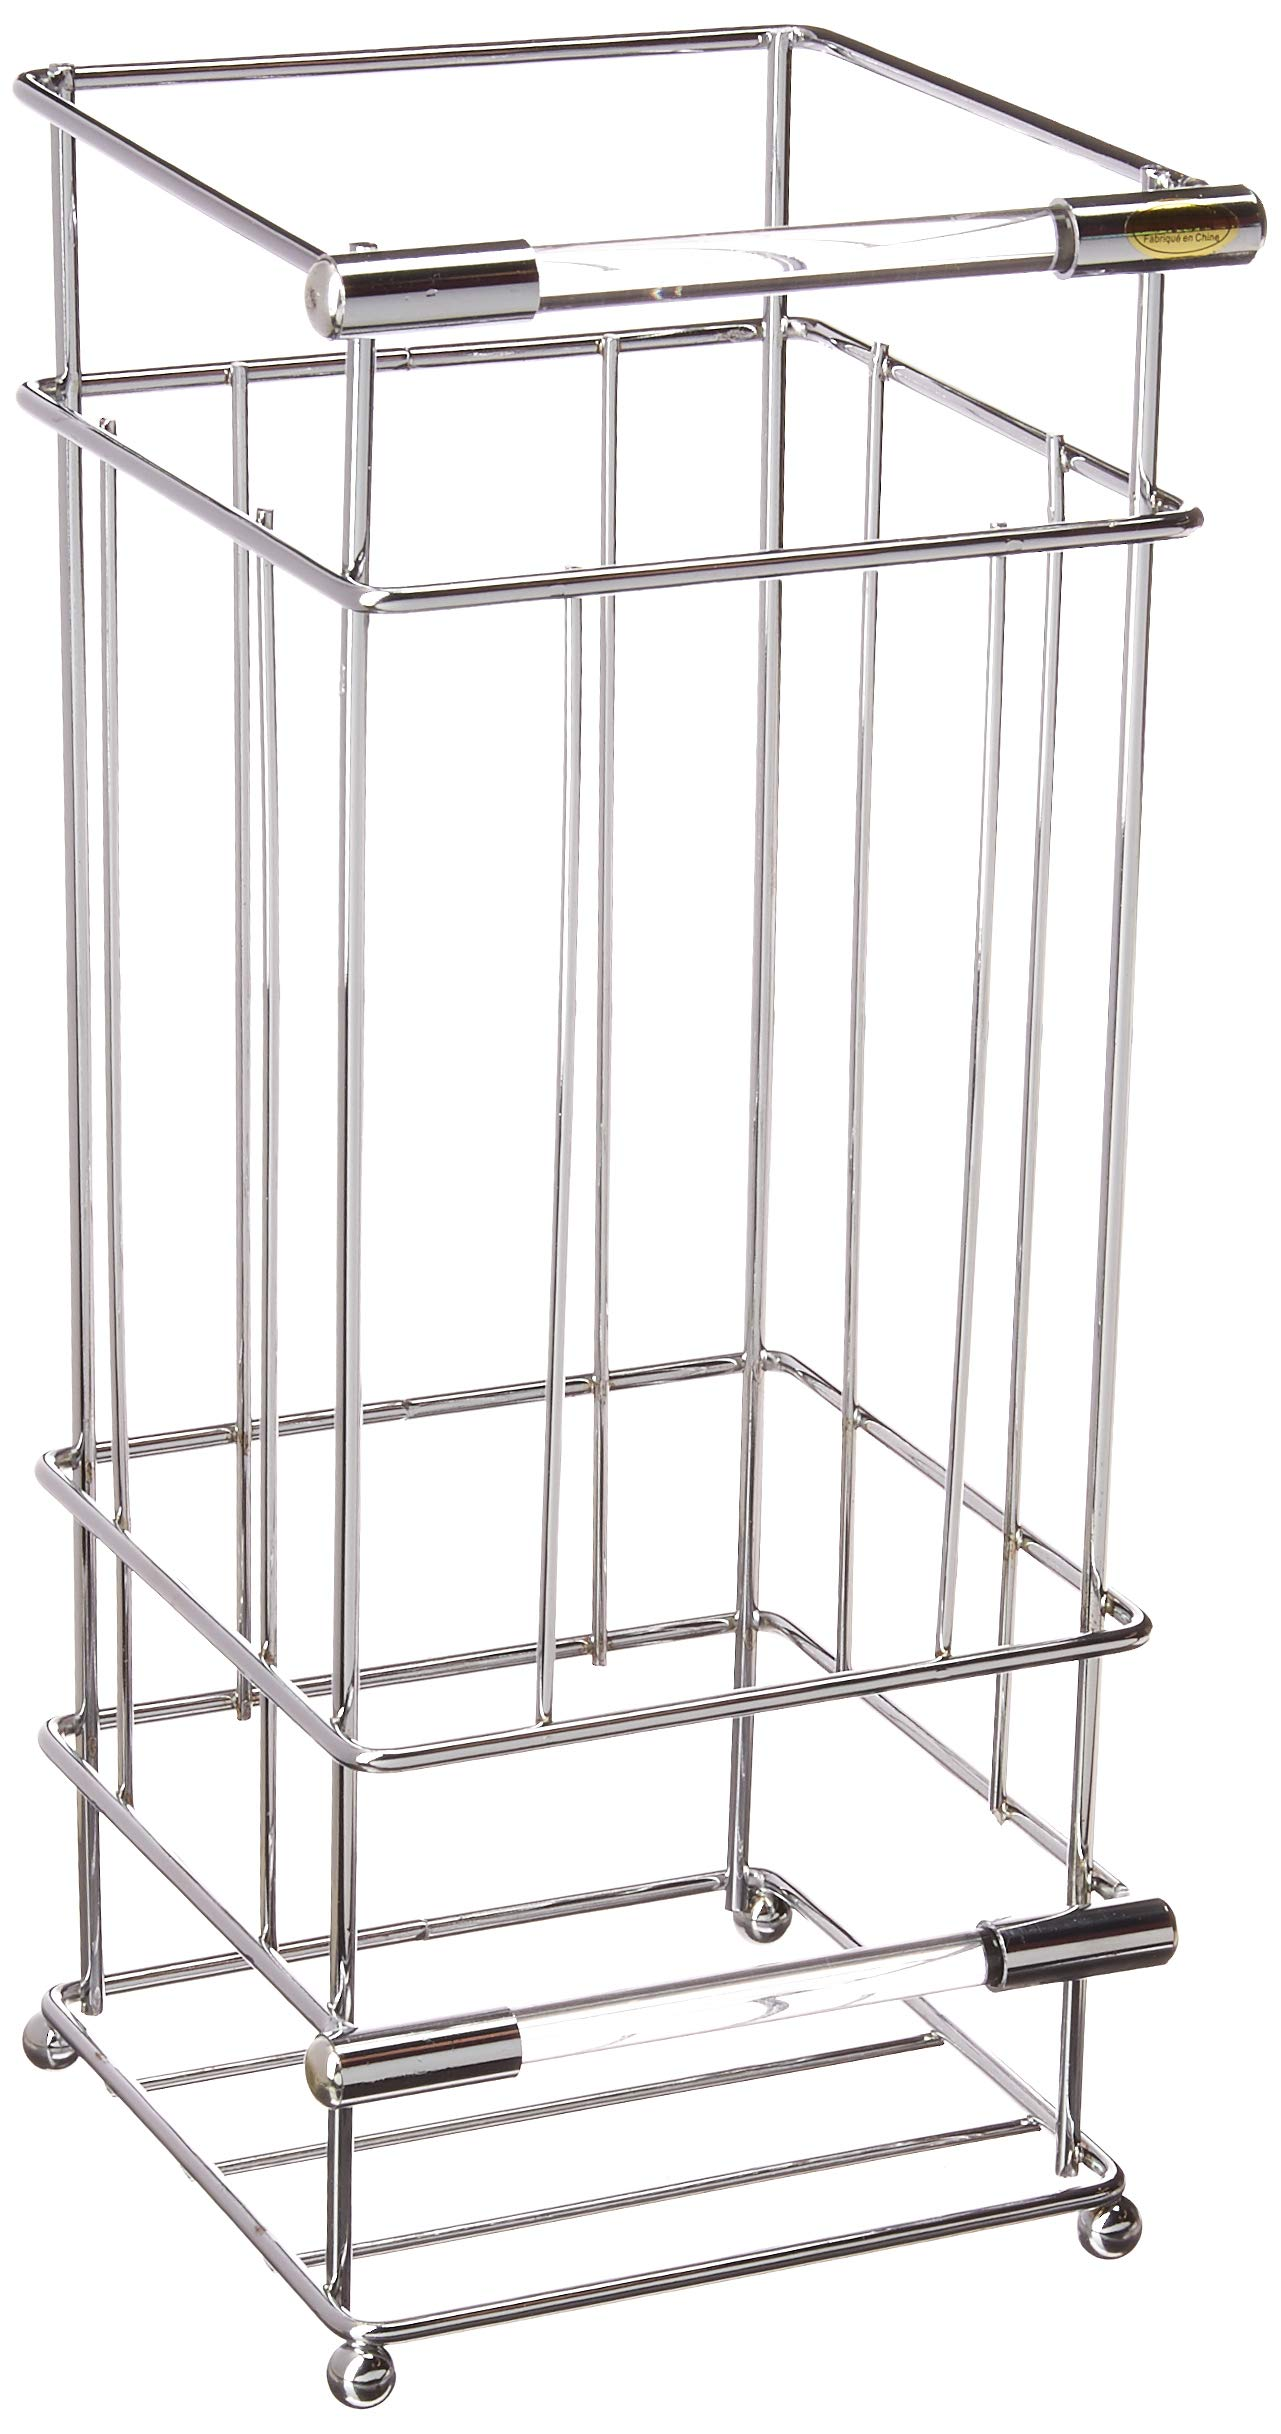 Richards Homewares Crystal Toilet Paper Reserve/Acrylic Storage Holder-Satin Nickel Finish-Square Design-Free Standing Modern and Contemporary Bathroom Space Saver, Chrome